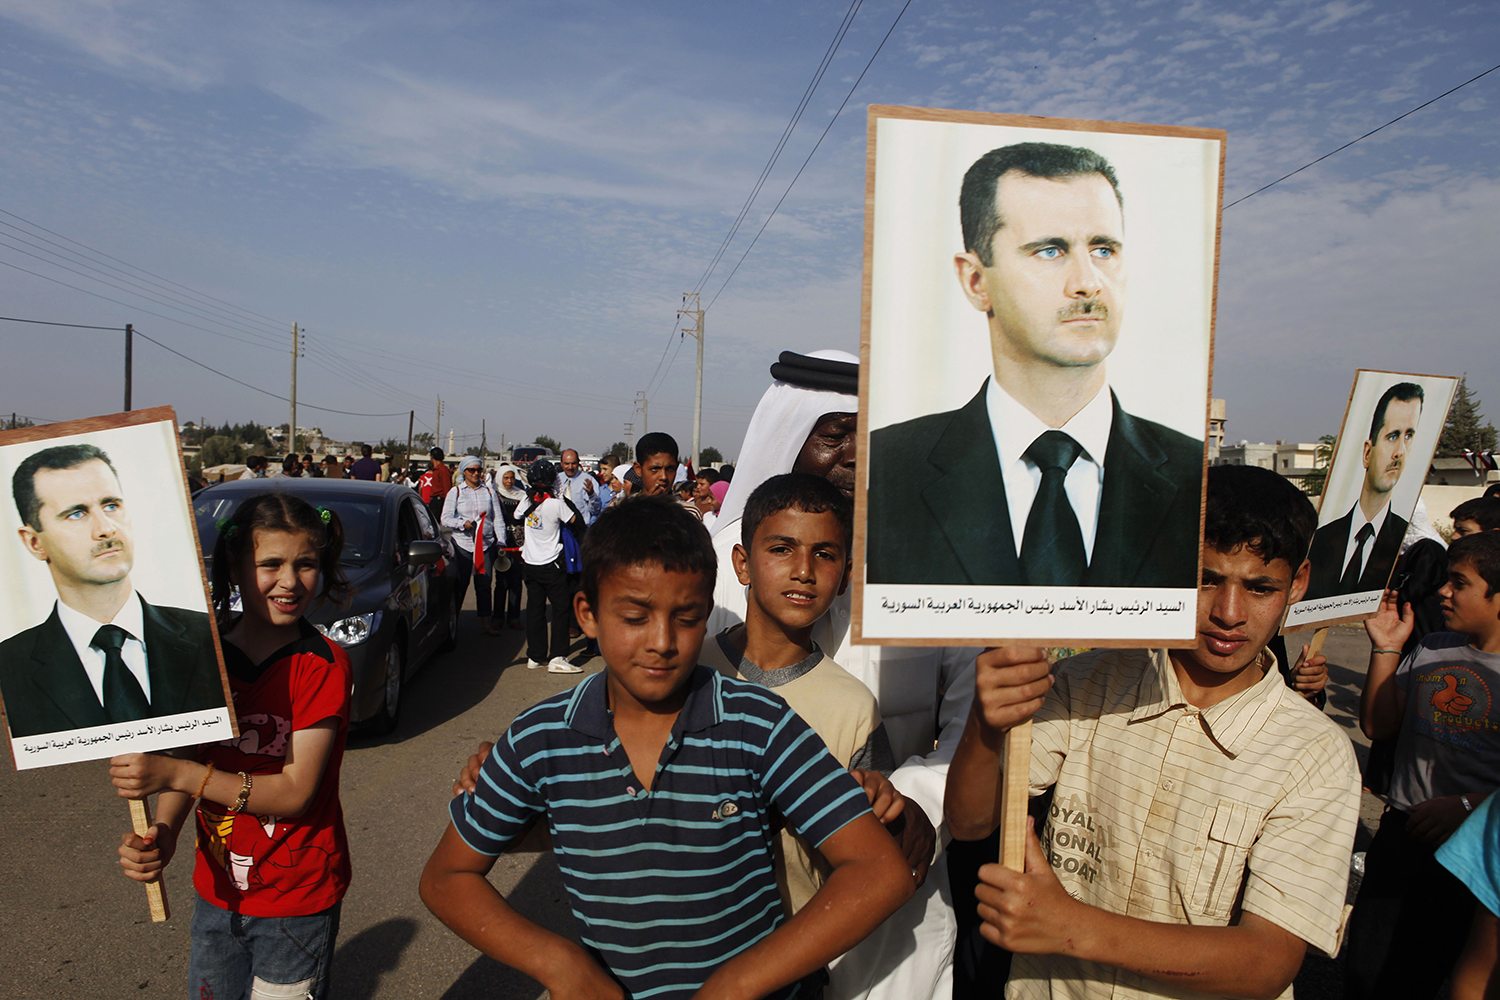 15 Children hold placards of President Asad, to welcome foreigners under supervision from state police, Darra, Syria. jpg